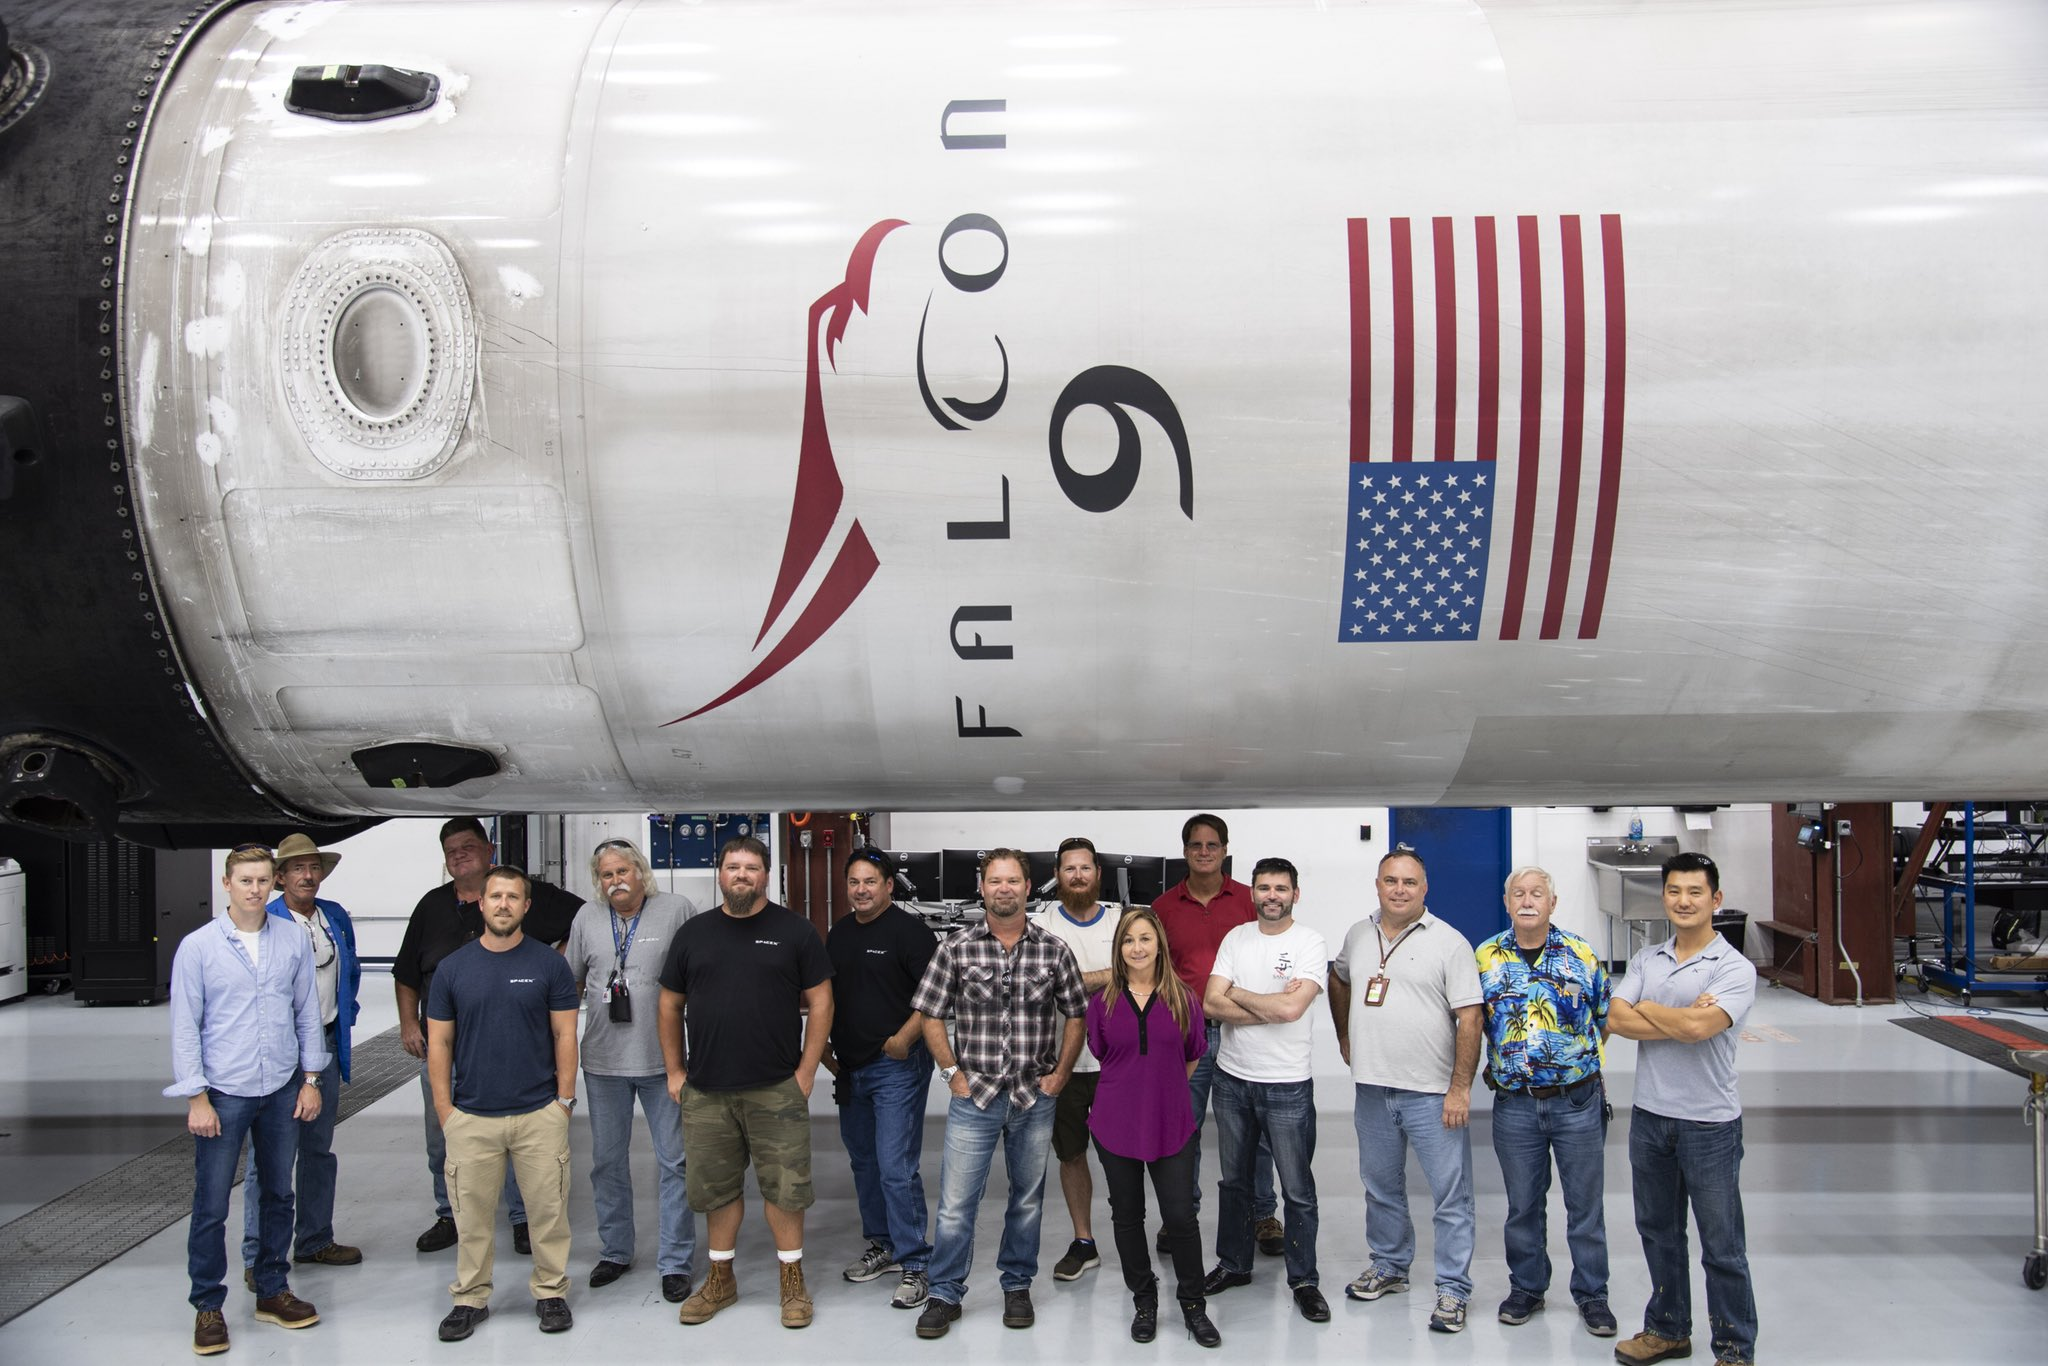 SpaceX delays expendable Falcon 9 satellite launch for an unprecedented second static fire test